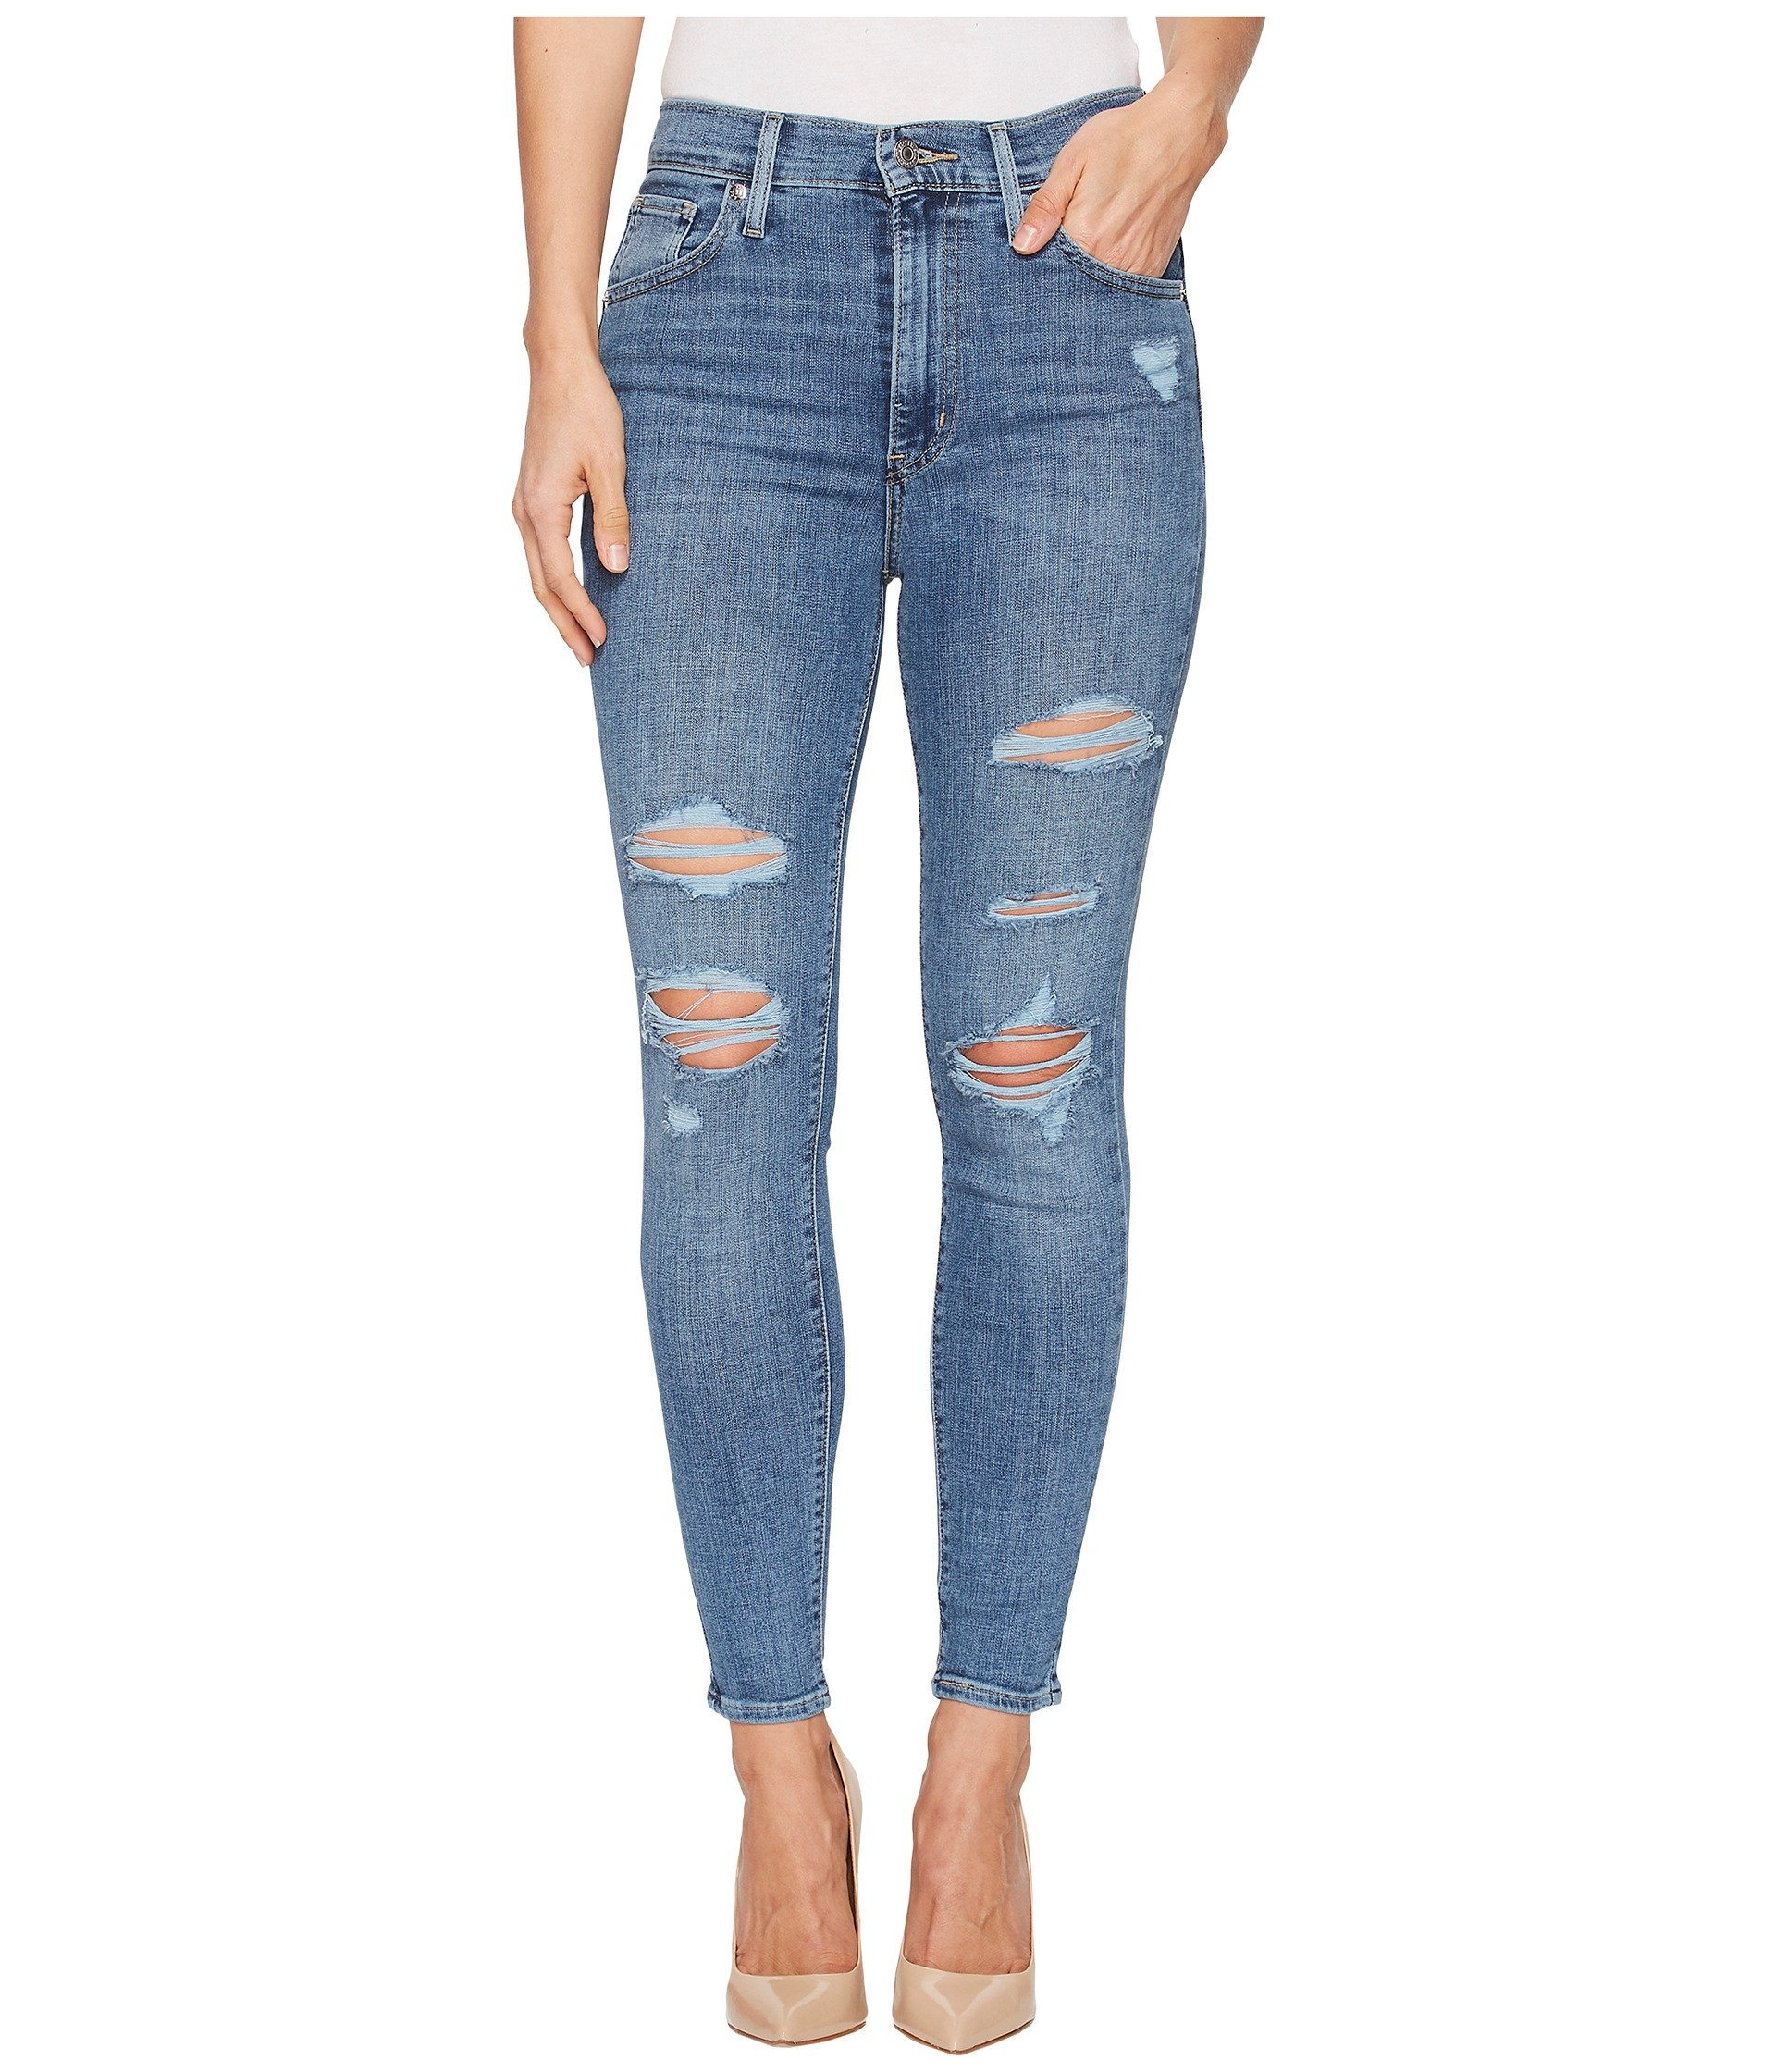 Levi's Women's Mile High Ankle Skinny Jeans, Night to Remember, 29 (US 8)